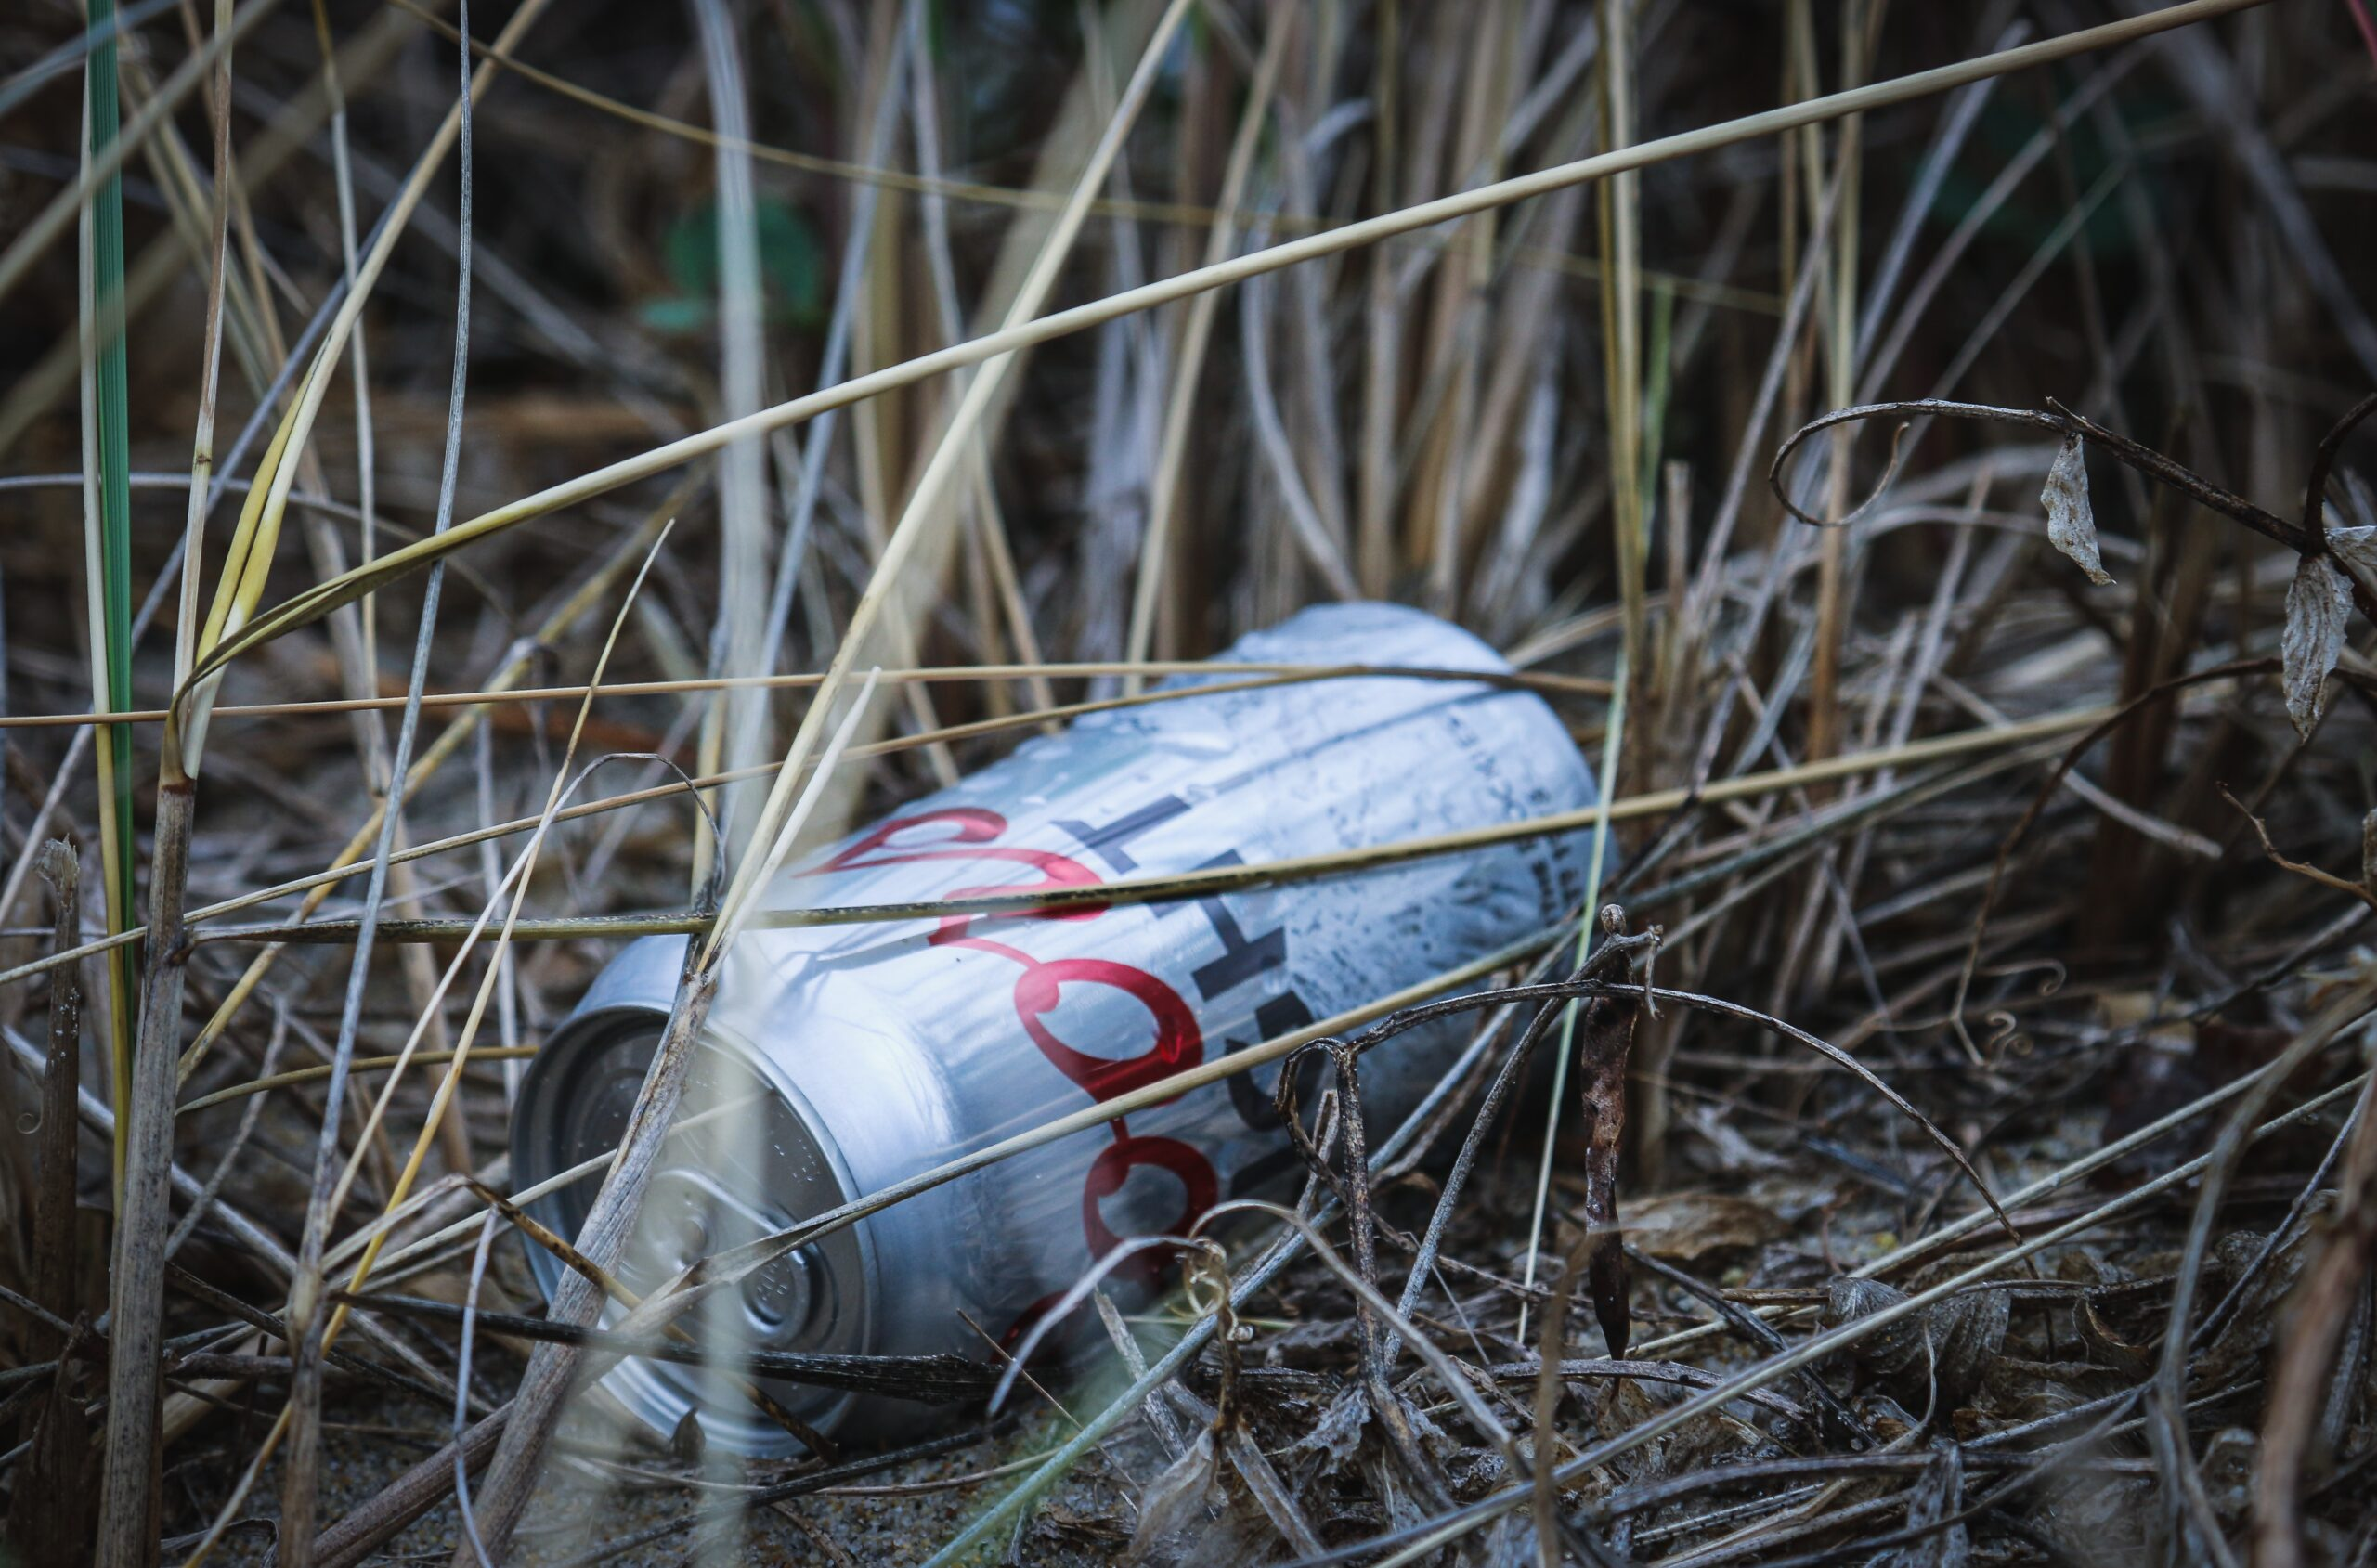 A can in high grass.